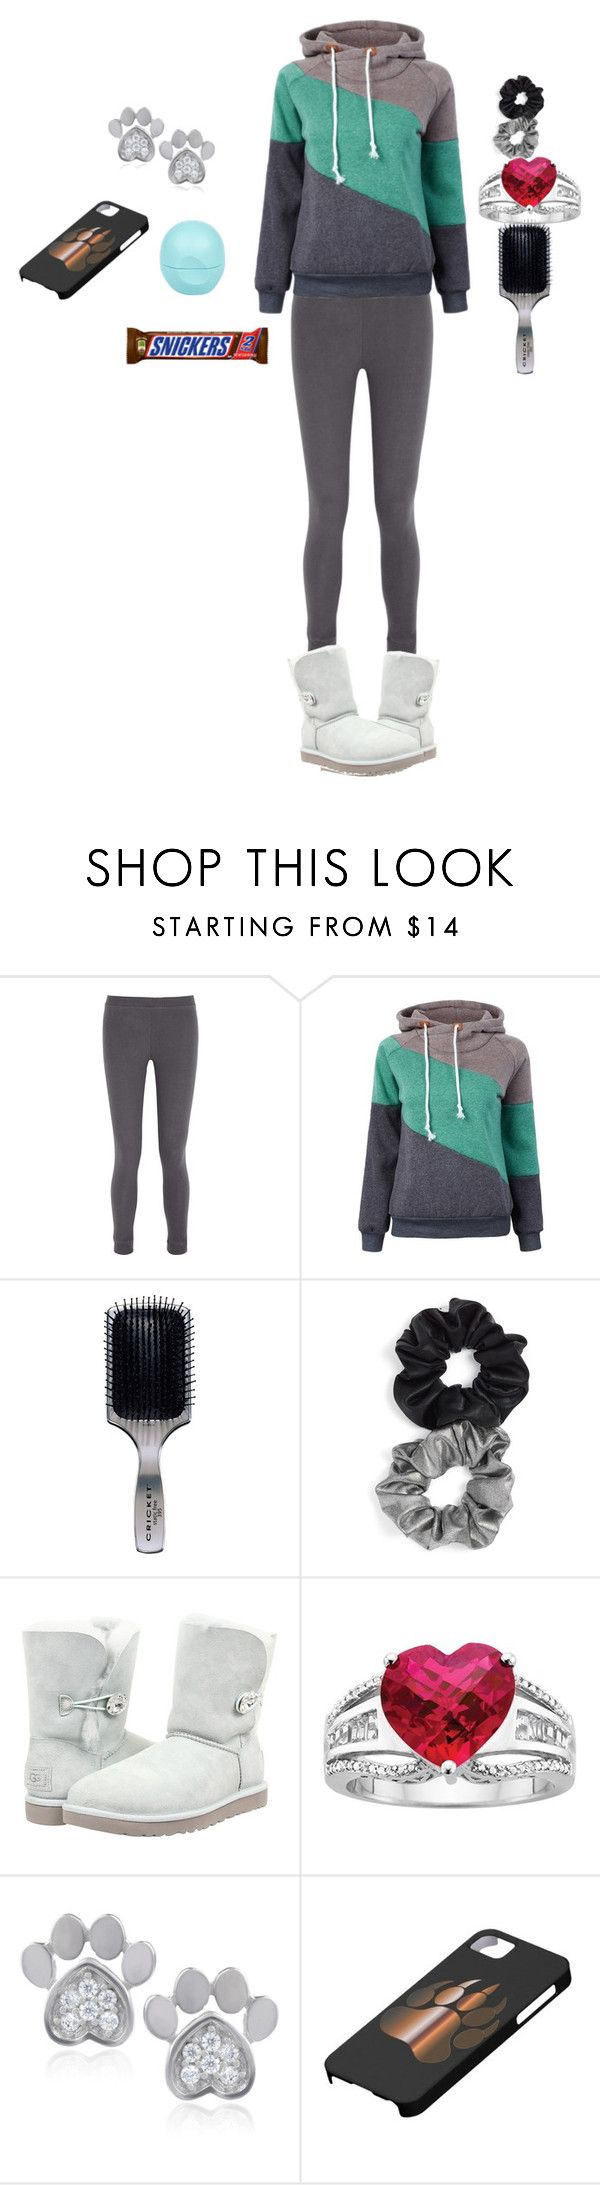 """""""Work out outfit"""" by lcasteris ❤ liked on Polyvore featuring Eberjey, Cricket, Berry, UGG Australia, Journee Collection, River Island, women's clothing, women, female and woman"""